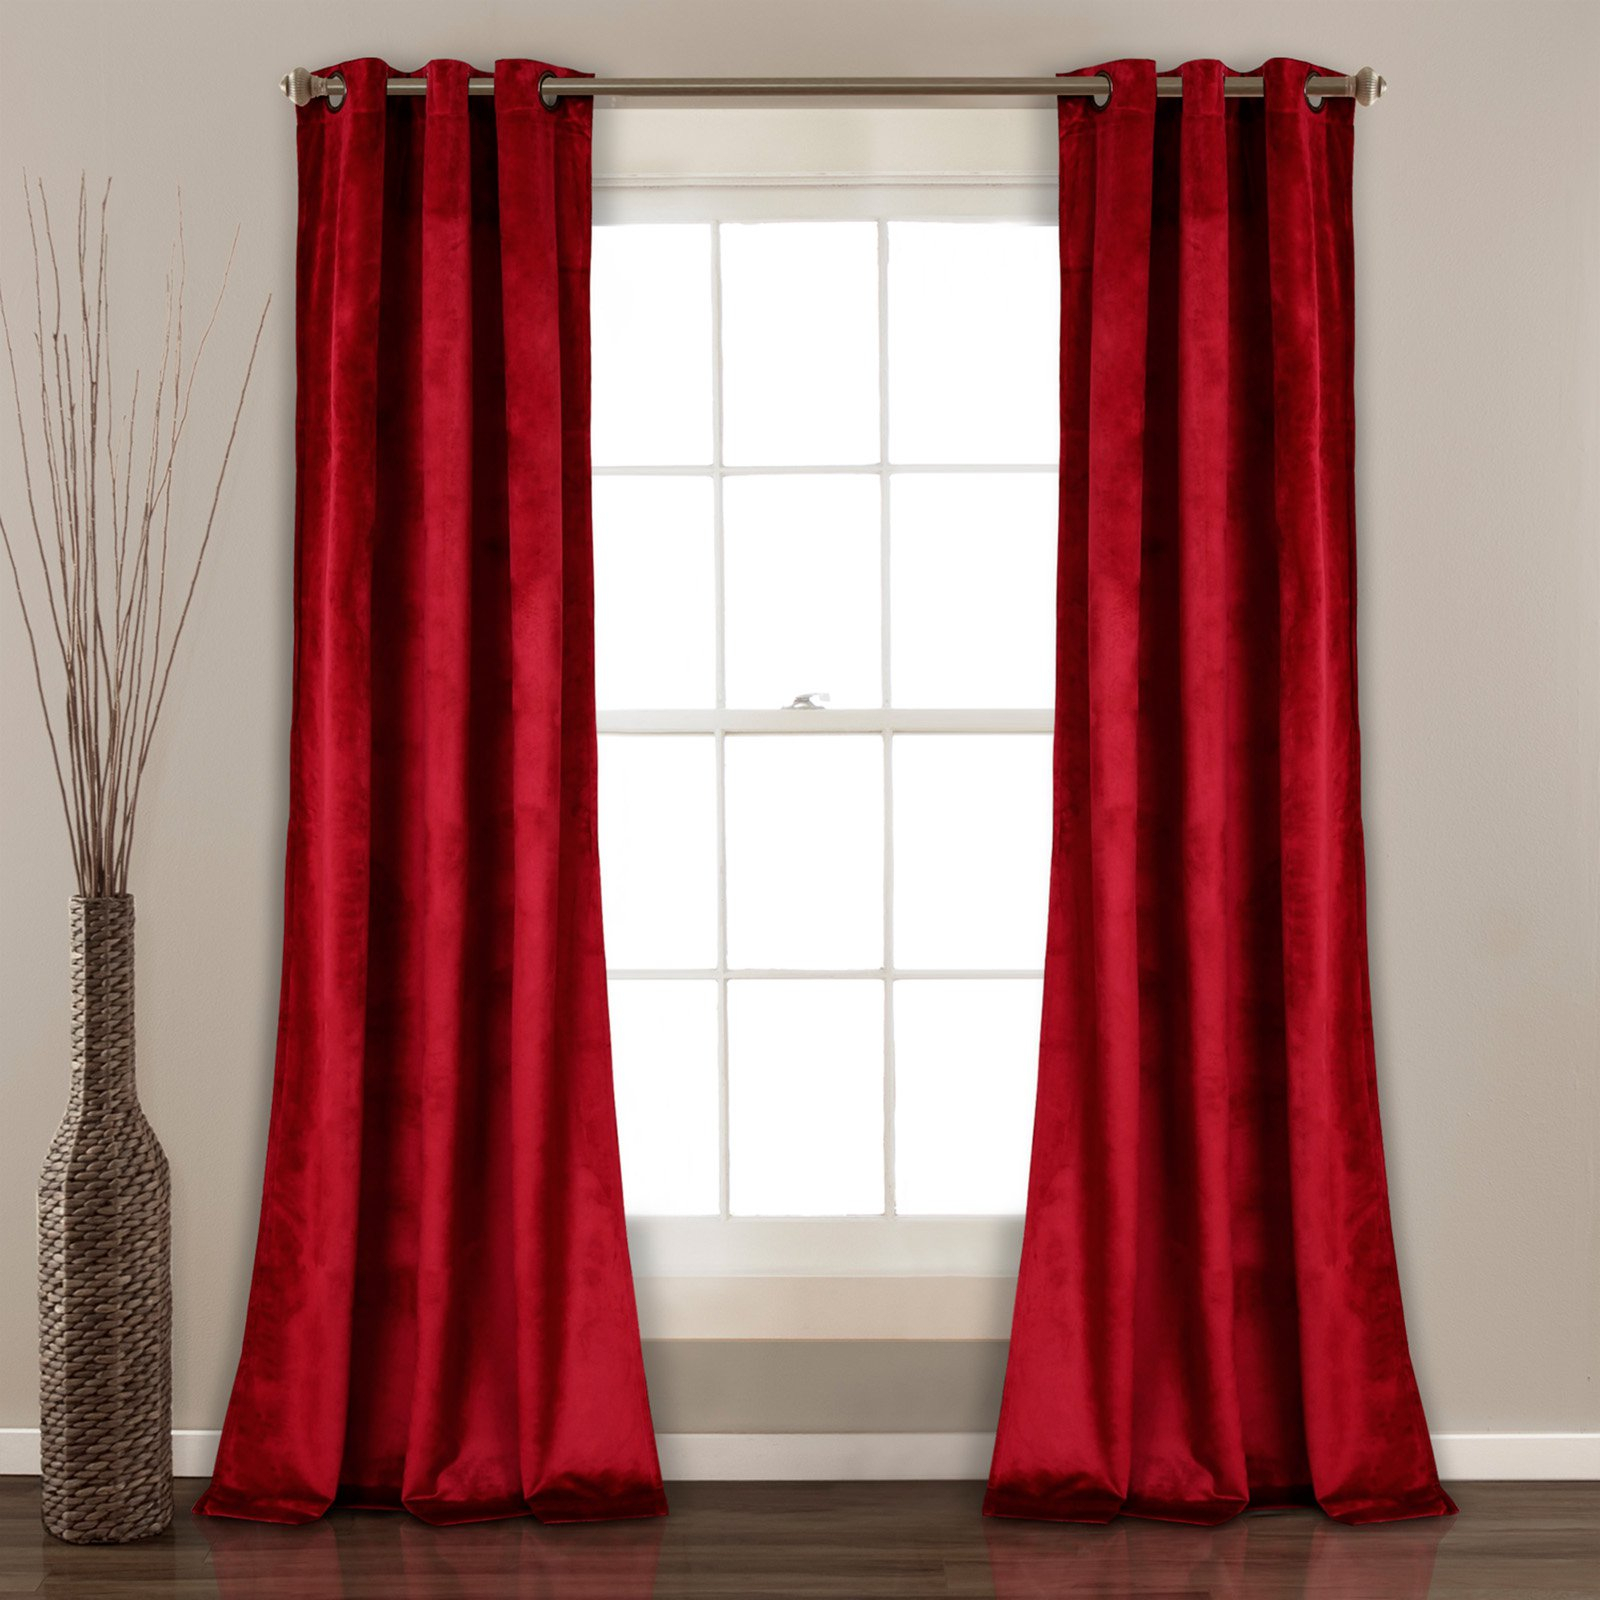 Lush Decor Prima Velvet Solid Room Darkening Window Curtain Within Velvet Solid Room Darkening Window Curtain Panel Sets (View 3 of 30)